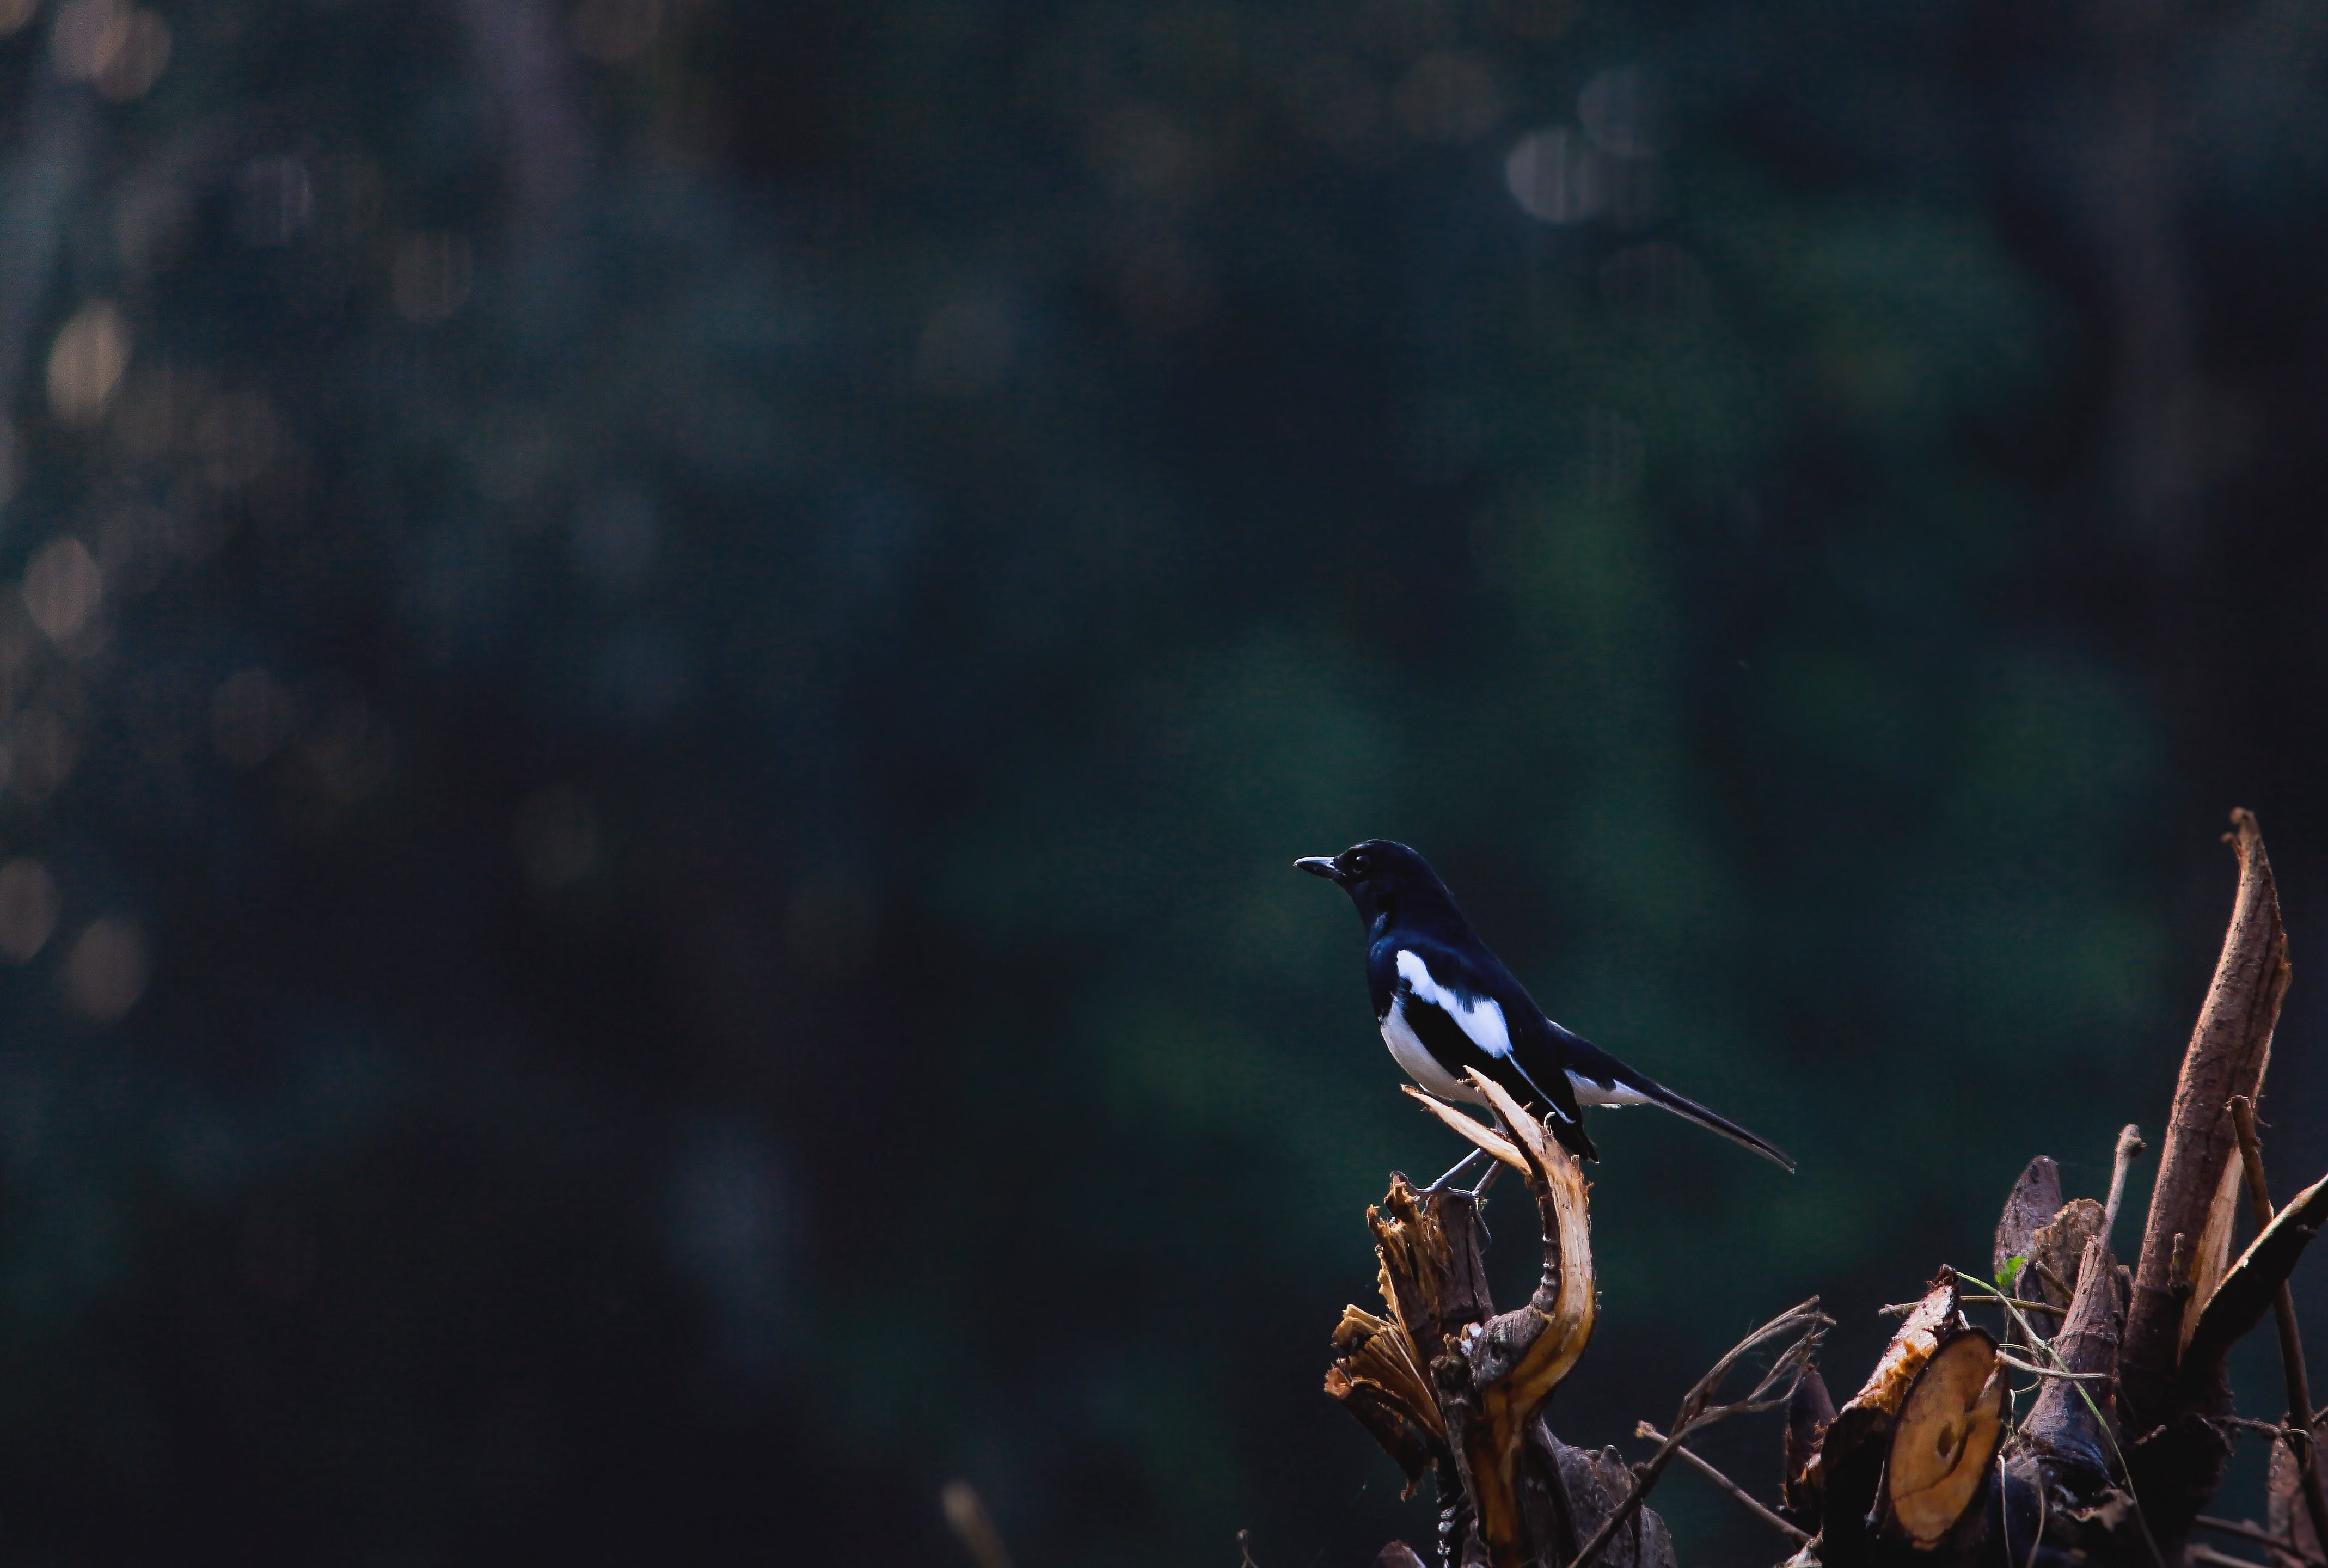 Black And White Bird Perched On Branch